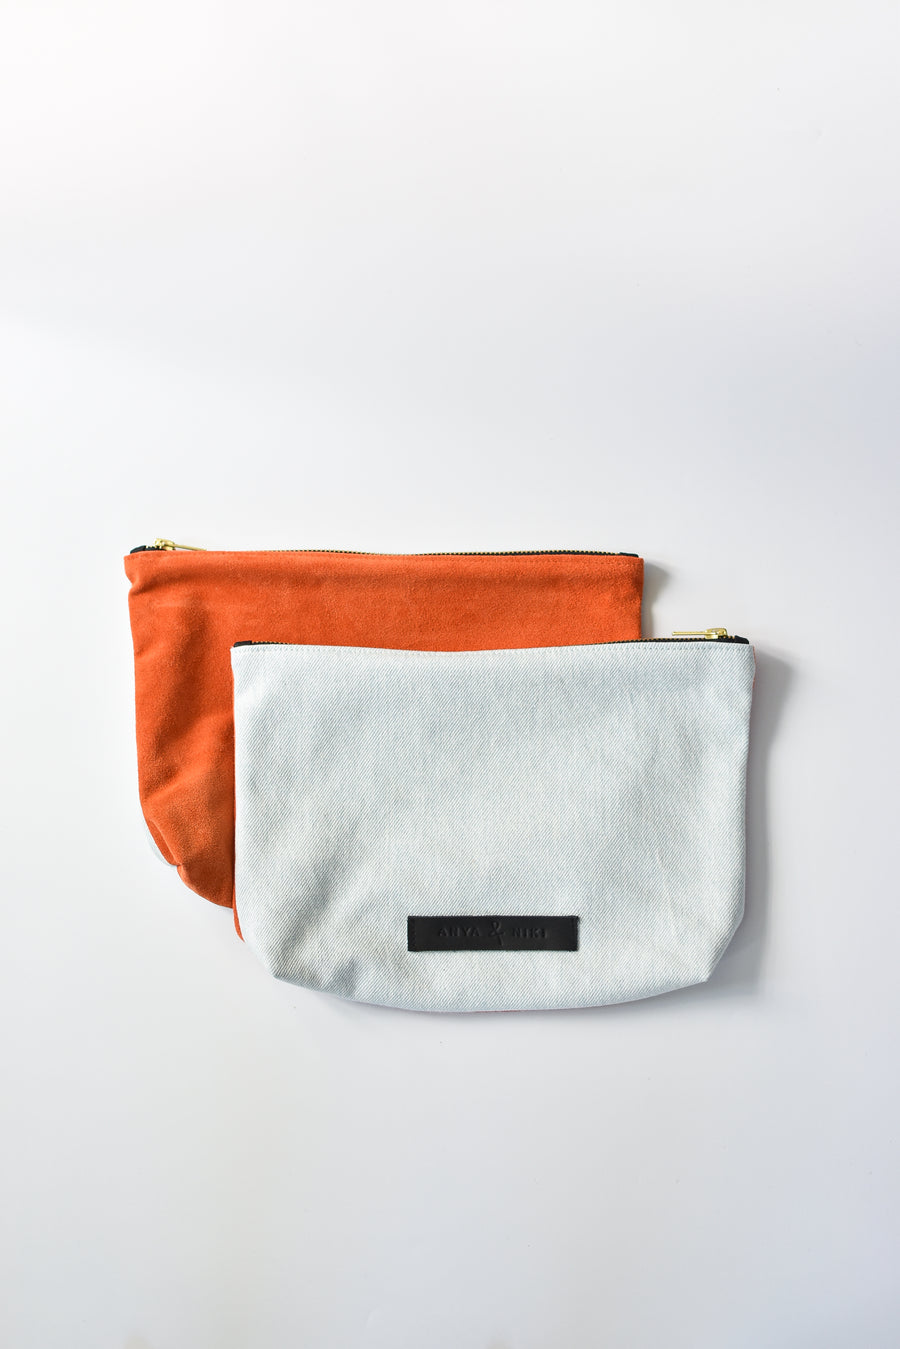 Washed denim and orange suede medium sized pouch with brass zipper and leather logo label.